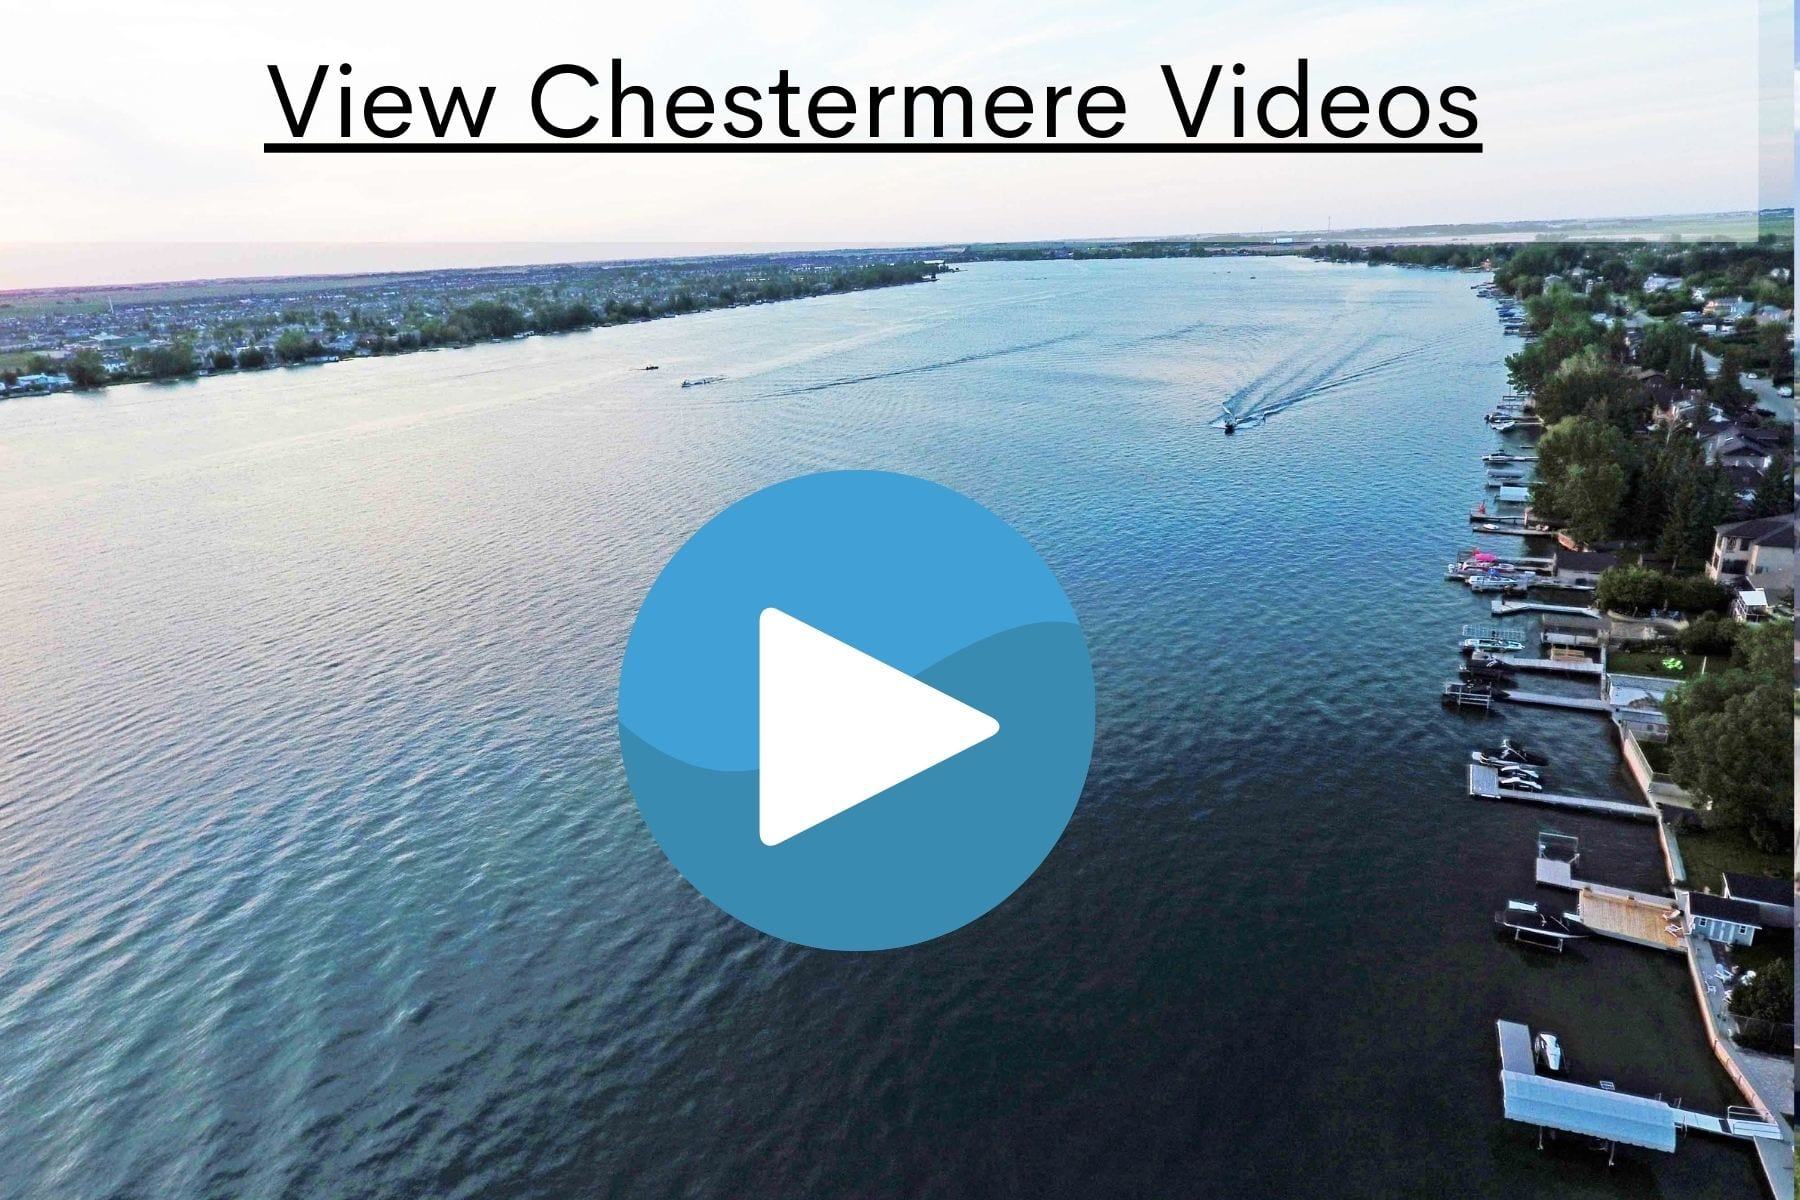 Videos of Chestermere